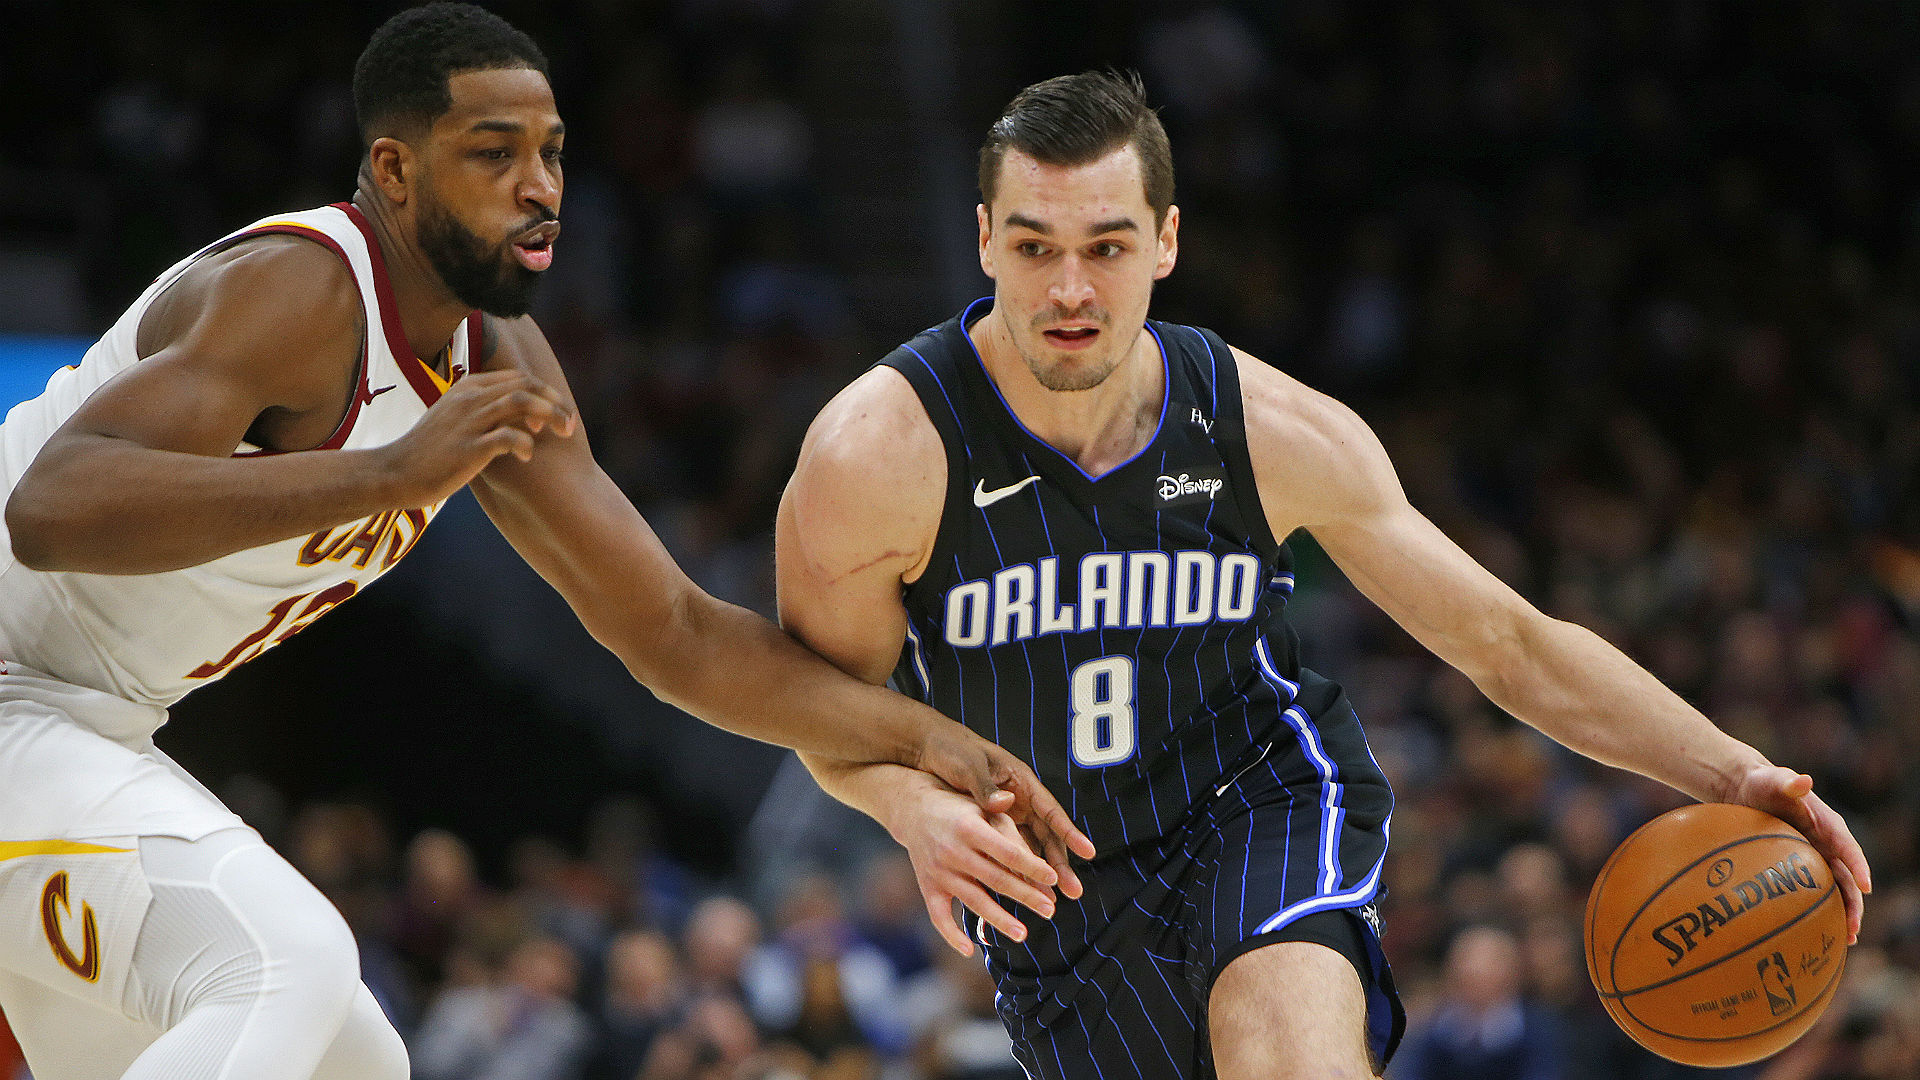 Knicks will reportedly sign Mario Hezonja